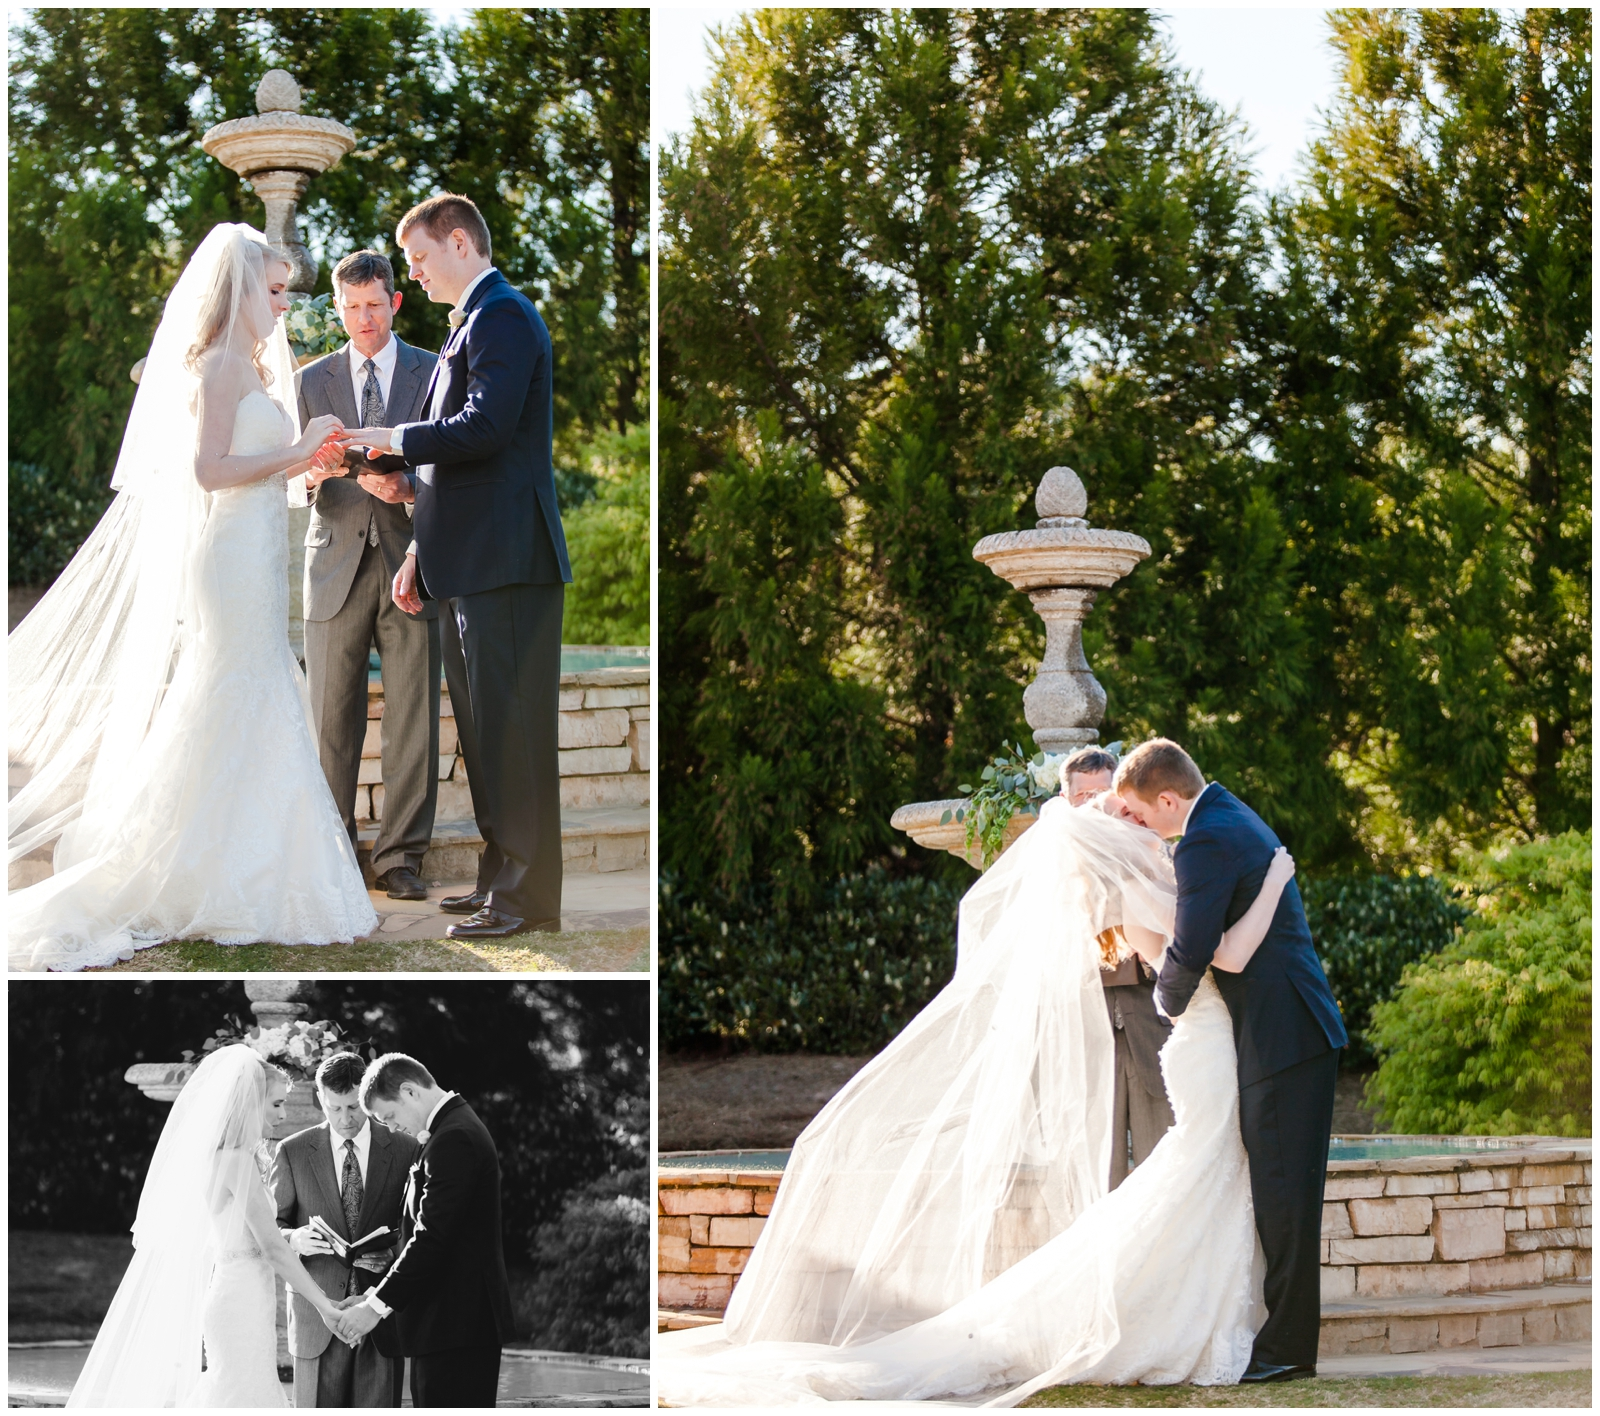 Morgan & Kyle_RoswellWedding_ArdentStory_0030